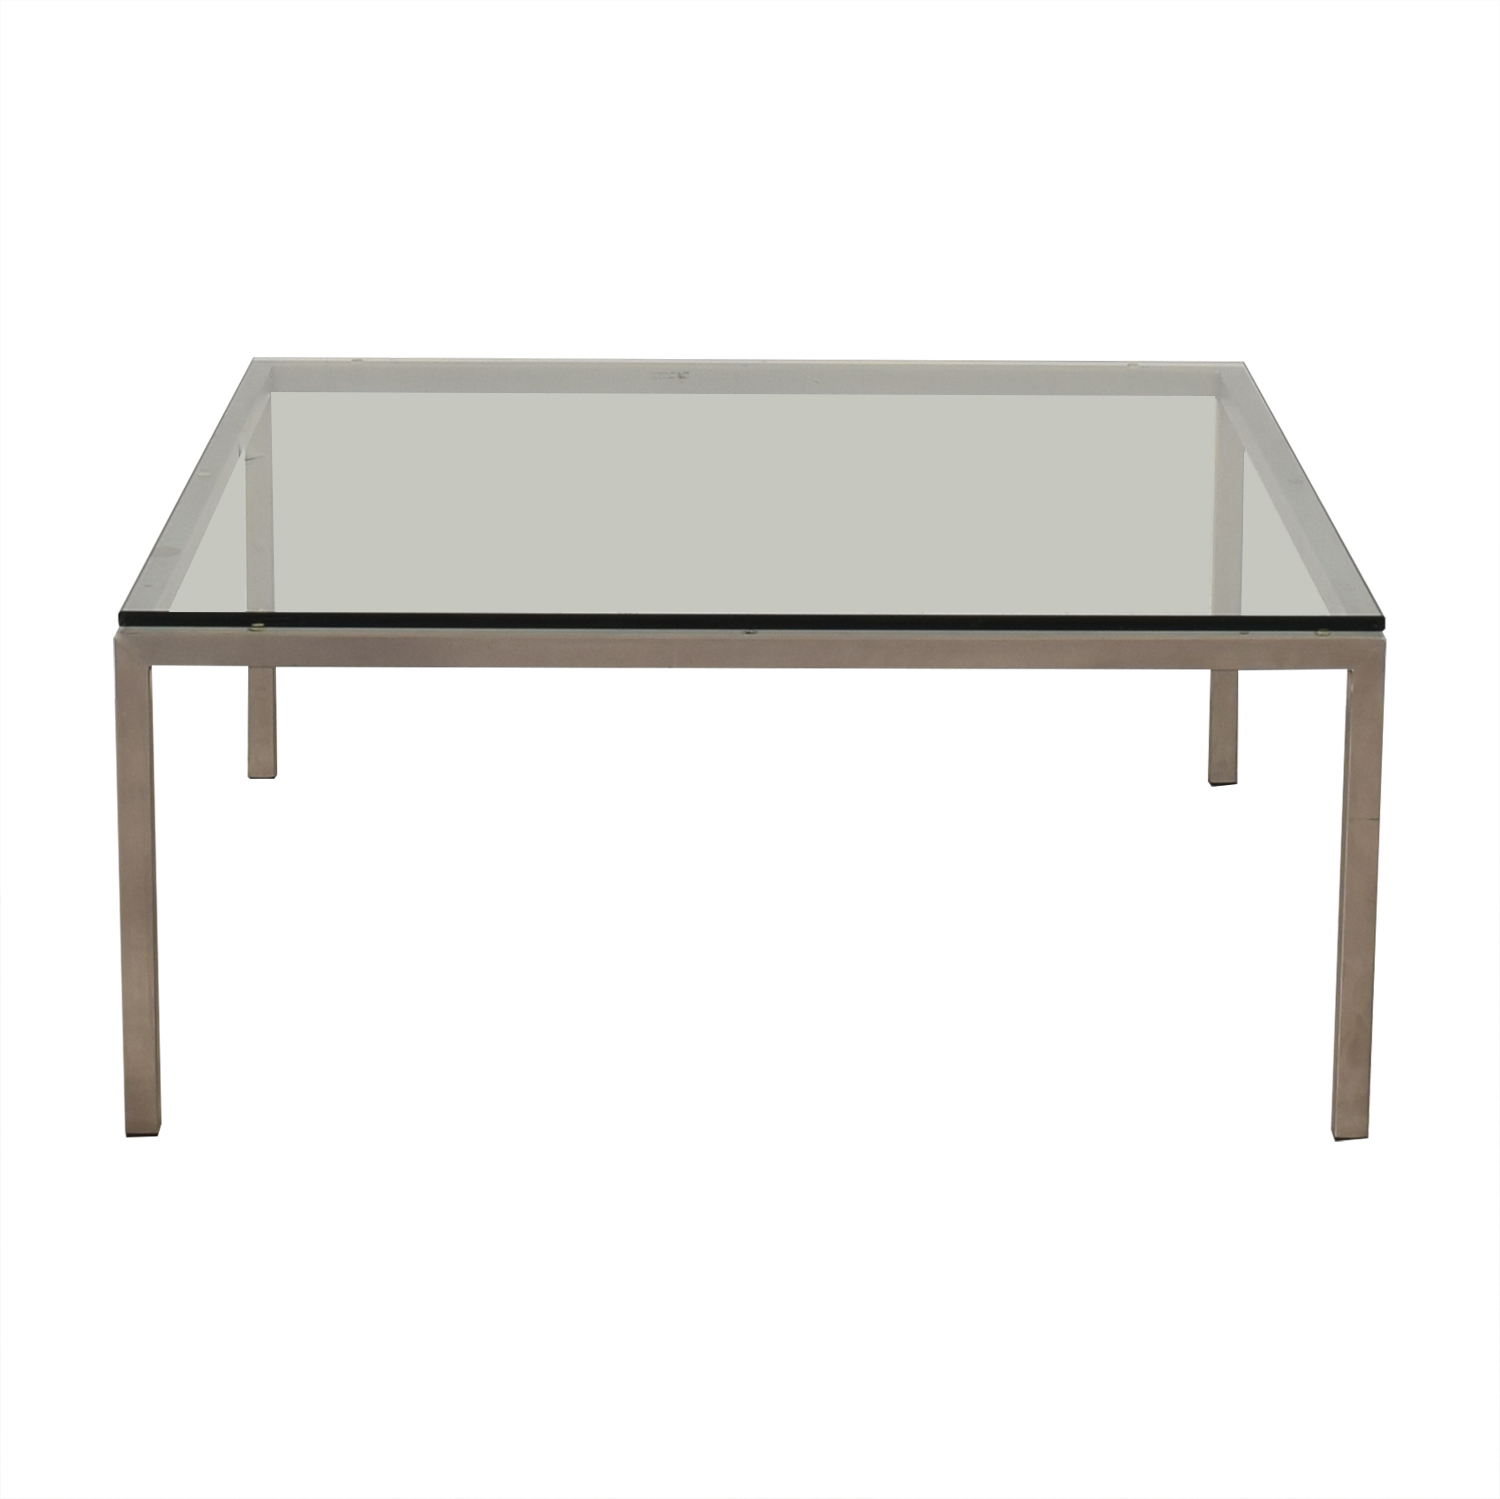 Room & Board Room & Board Glass Top Coffee Table Coffee Tables